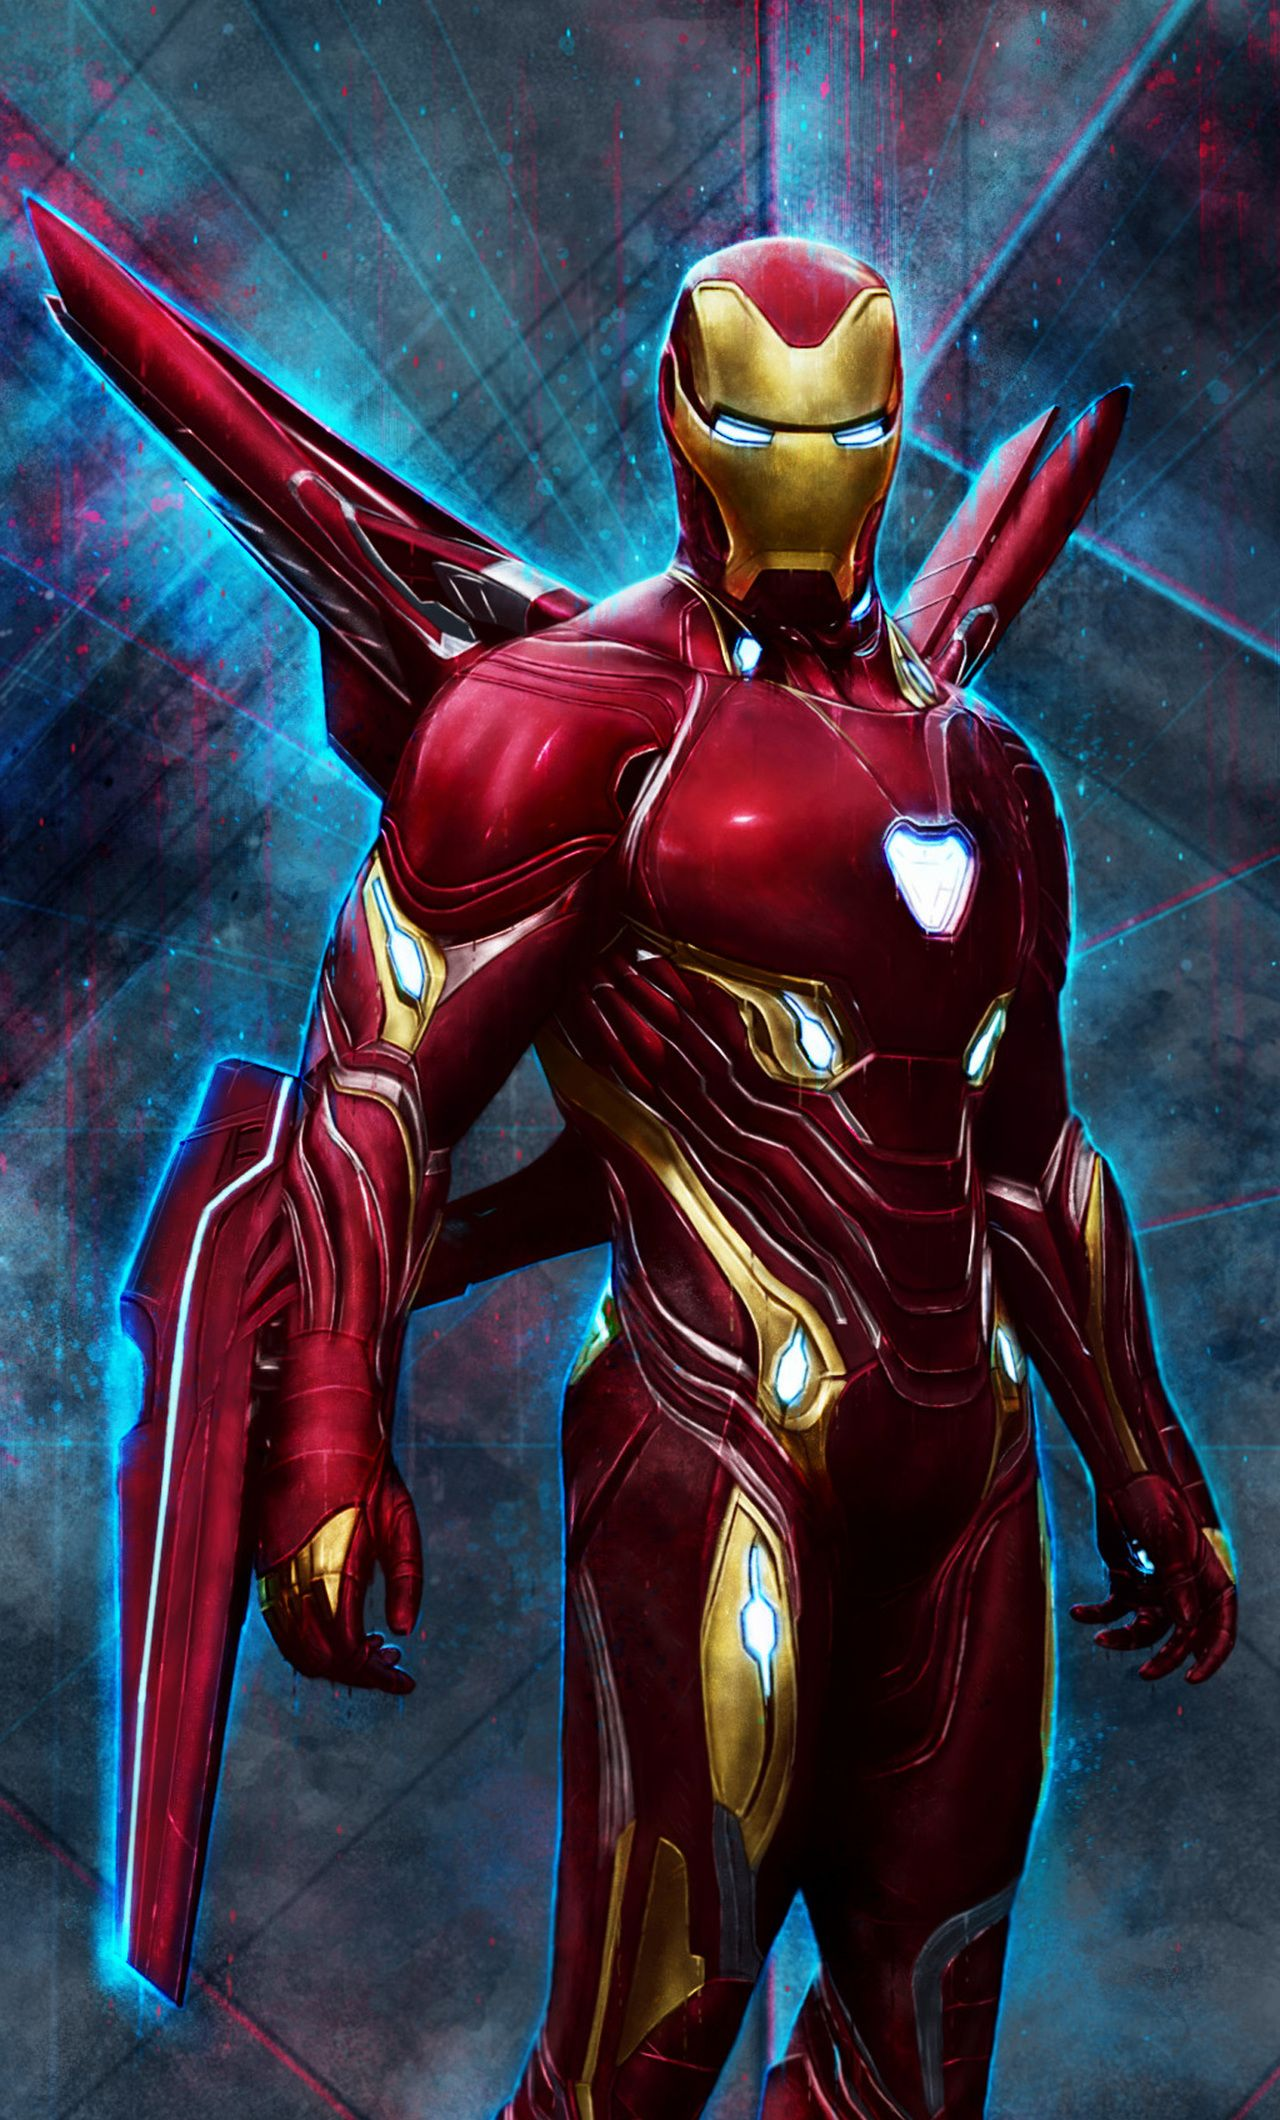 1280x2120 Iron Man Bleeding Edge Armor Iphone 6 Hd 4k Wallpapers Images Backgrounds Photos And Pictures Iron Man Wallpaper Iron Man Avengers Man Wallpaper